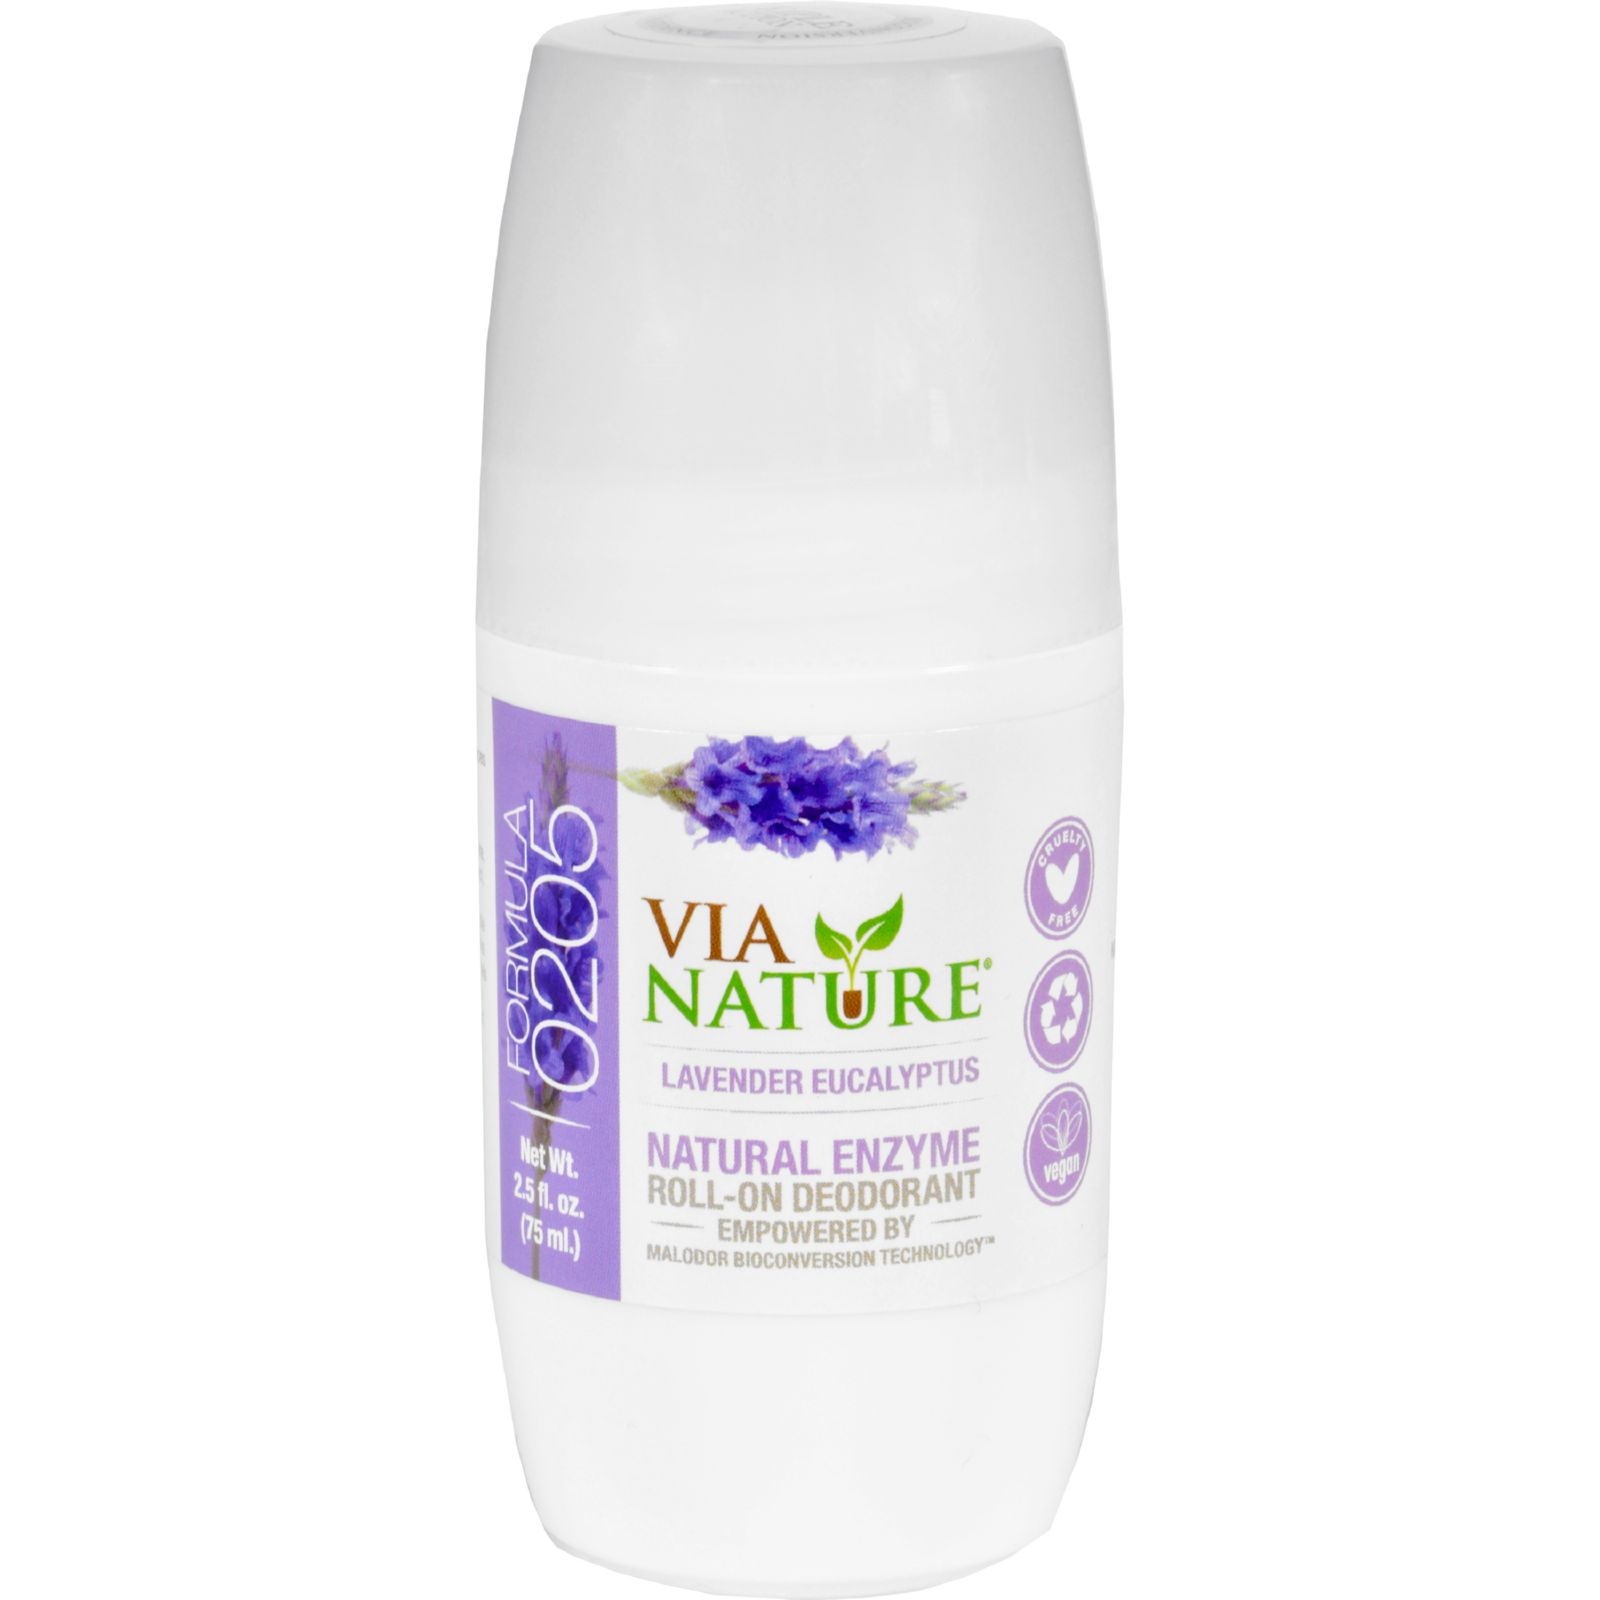 Via Nature Deodorant - Roll On - Lavender Eucalyptus - 2.5 Fl Oz